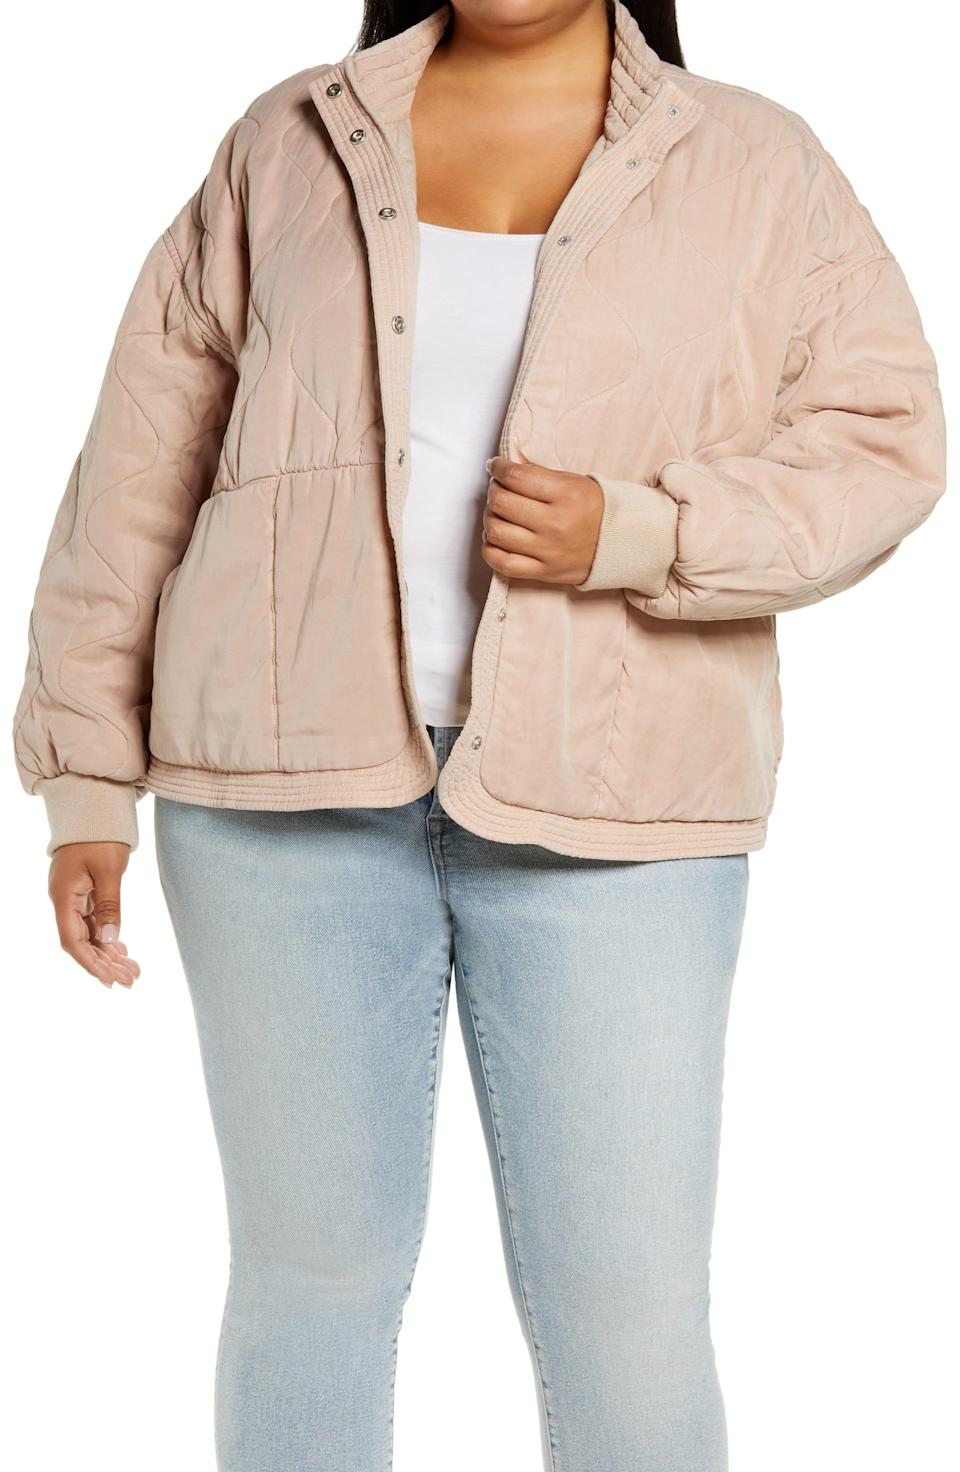 """<p><strong>BLANKNYC</strong></p><p>nordstrom.com</p><p><strong>$49.97</strong></p><p><a href=""""https://go.redirectingat.com?id=74968X1596630&url=https%3A%2F%2Fwww.nordstrom.com%2Fs%2Fblanknyc-quilted-front-snap-jacket-plus-size%2F5813990&sref=https%3A%2F%2Fwww.cosmopolitan.com%2Fstyle-beauty%2Ffashion%2Fg37193145%2Fwinter-fashion-trends-2021-2022%2F"""" rel=""""nofollow noopener"""" target=""""_blank"""" data-ylk=""""slk:Shop Now"""" class=""""link rapid-noclick-resp"""">Shop Now</a></p><p>A super soft textured jacket is the perfect addition to your winter wardrobe. </p>"""